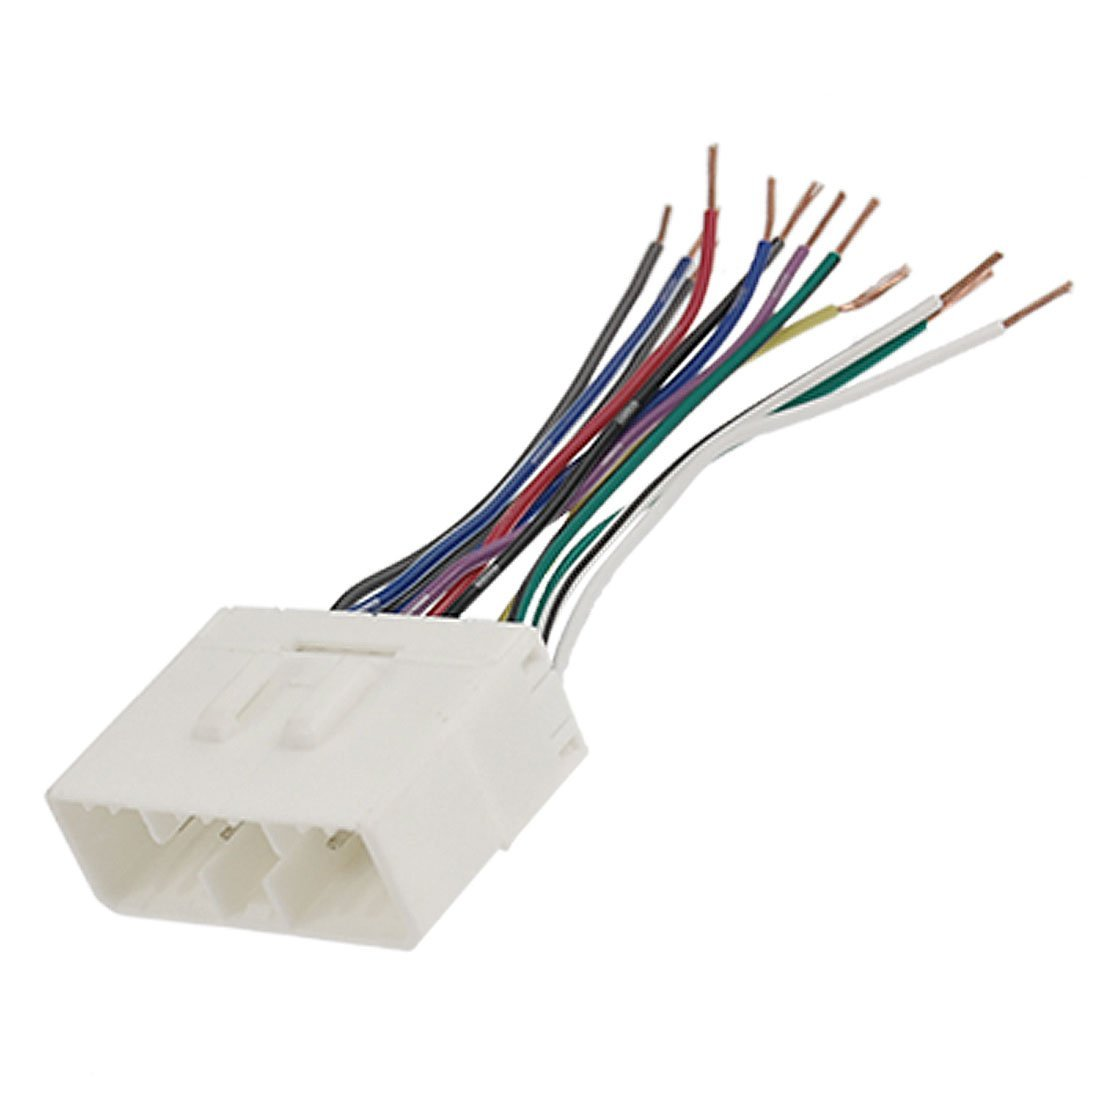 Wiring Harness Assembly Board